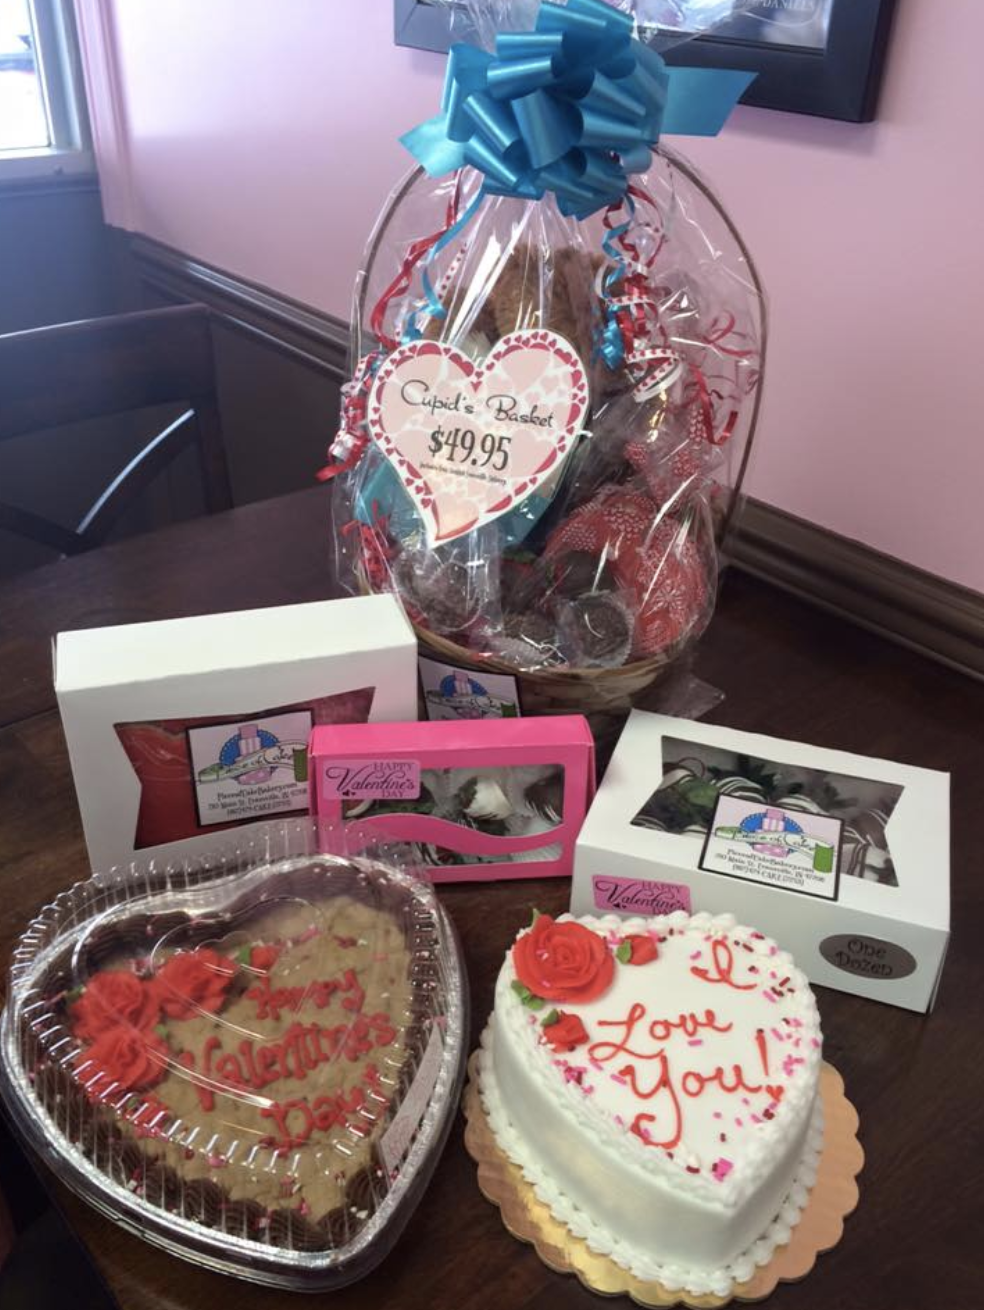 Valentine's gift basket from Piece of Cake